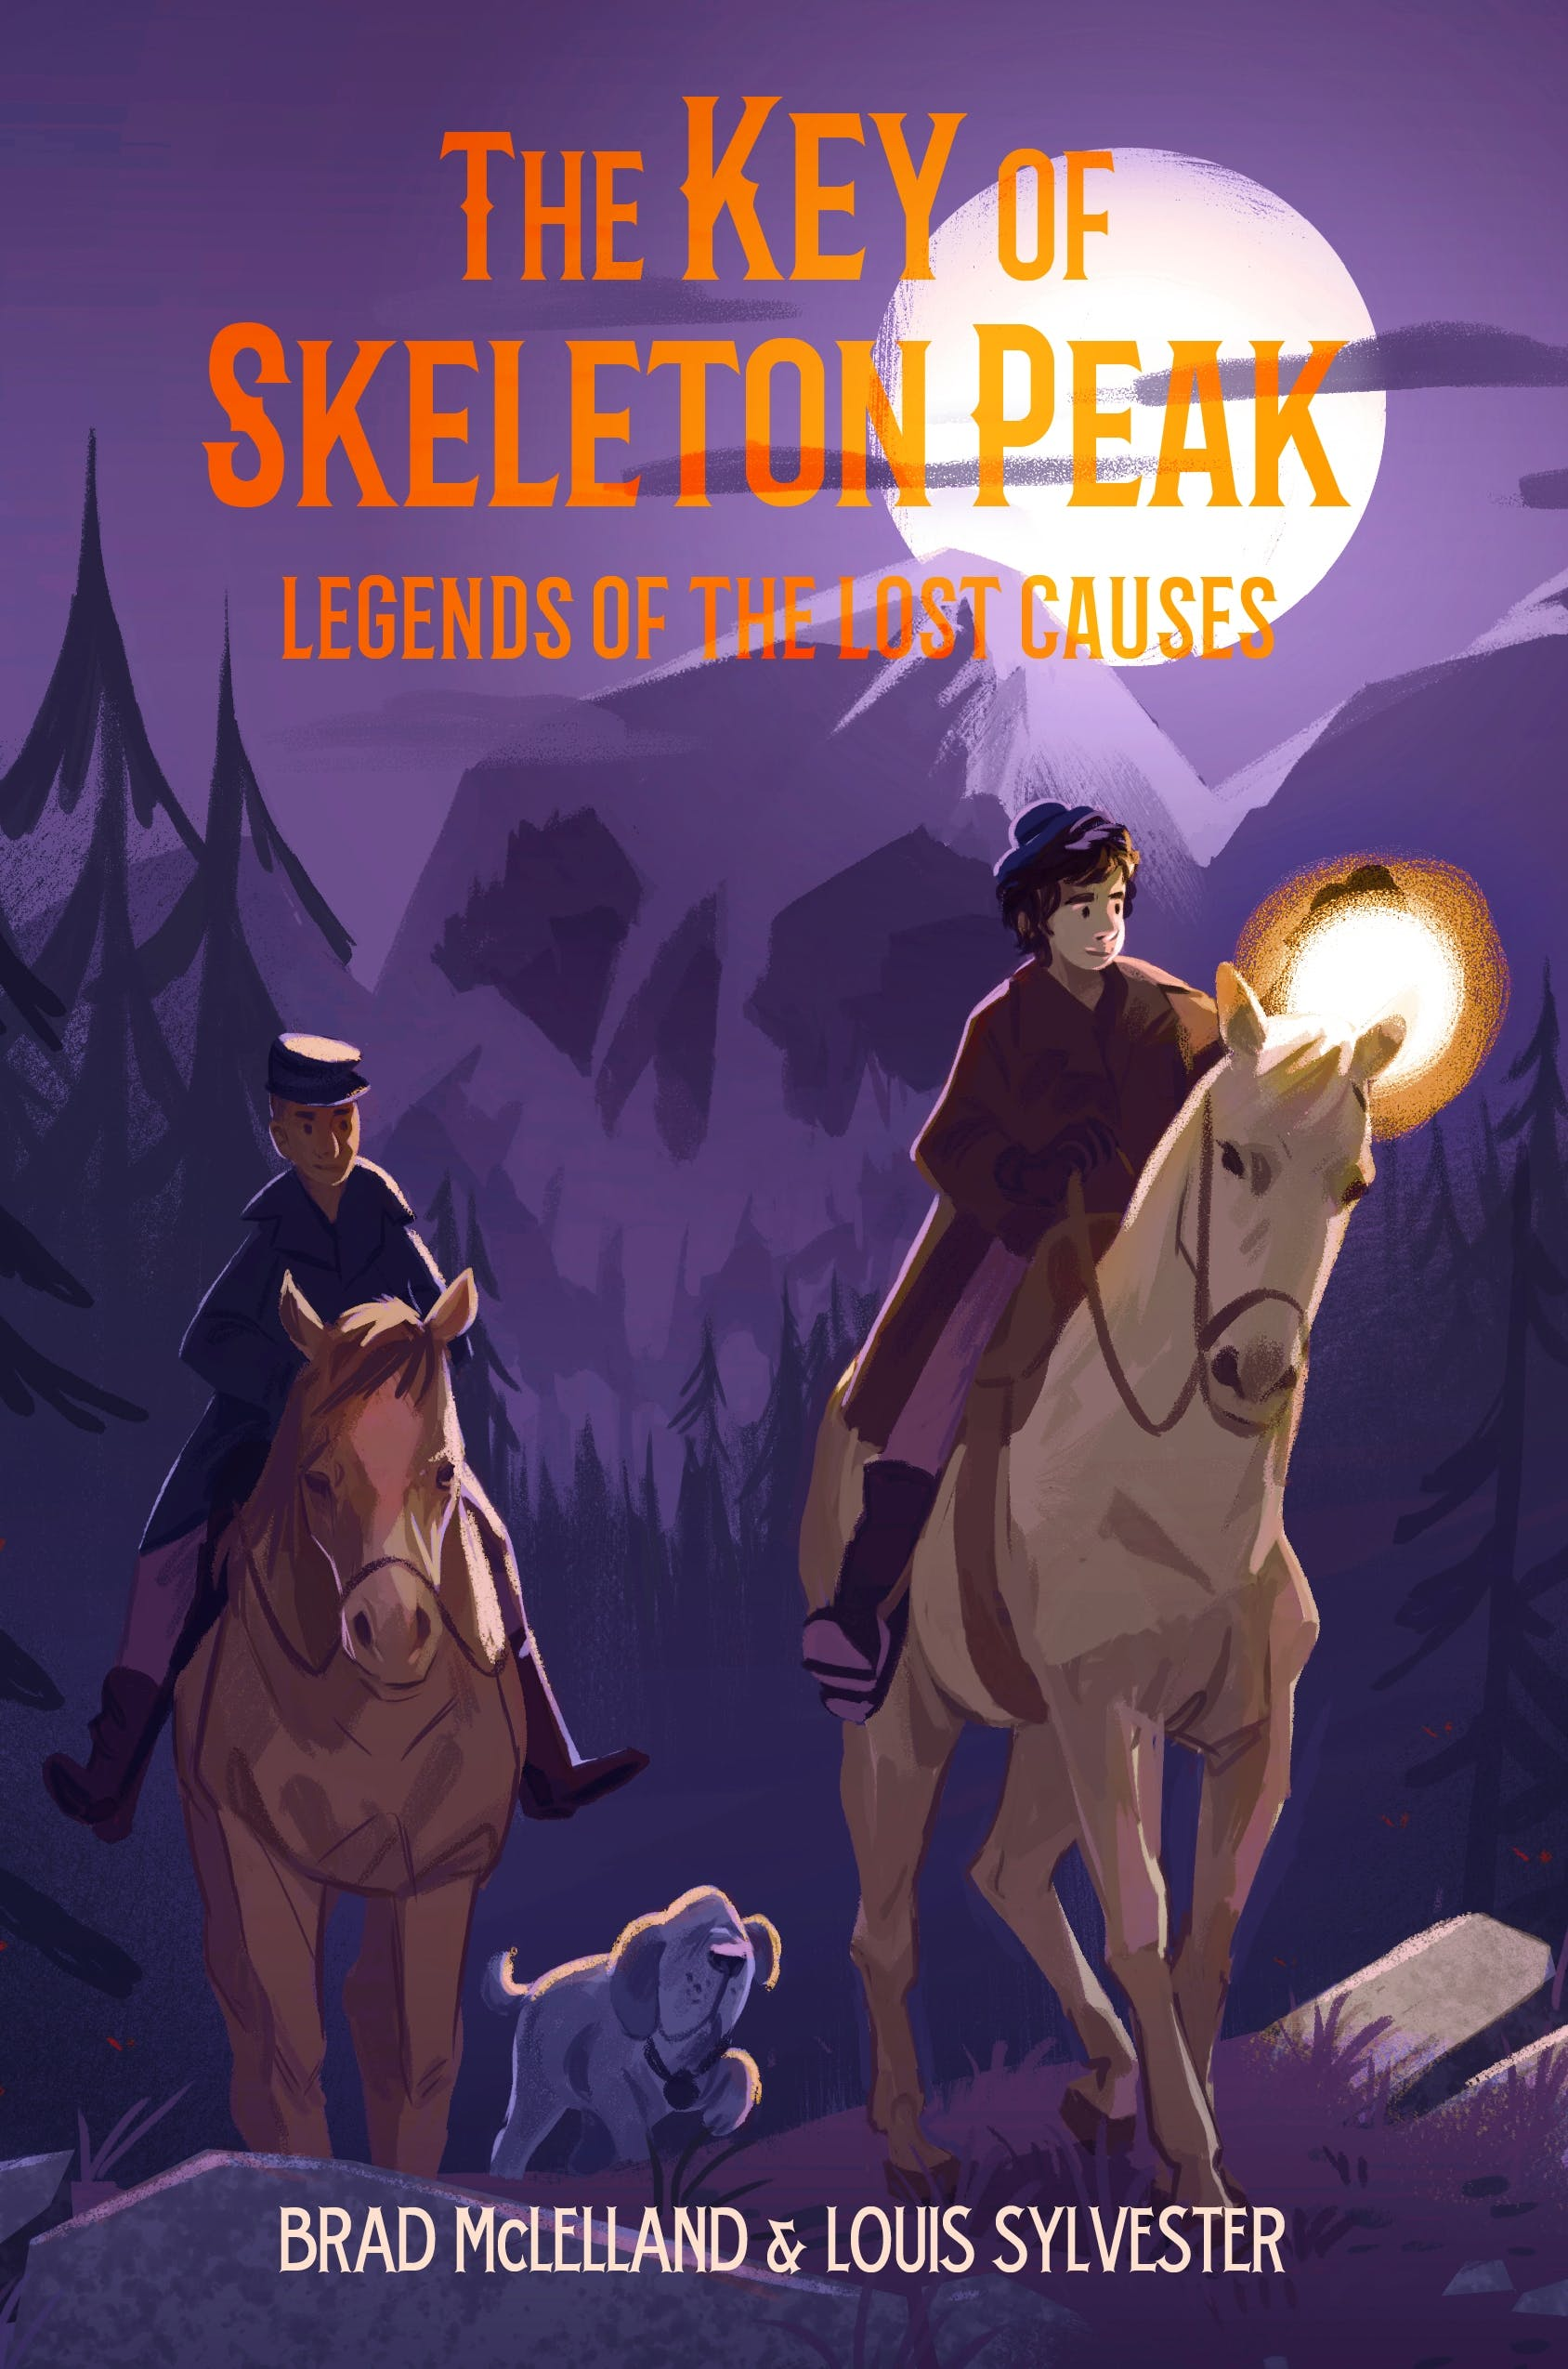 Image of The Key of Skeleton Peak: Legends of the Lost Causes